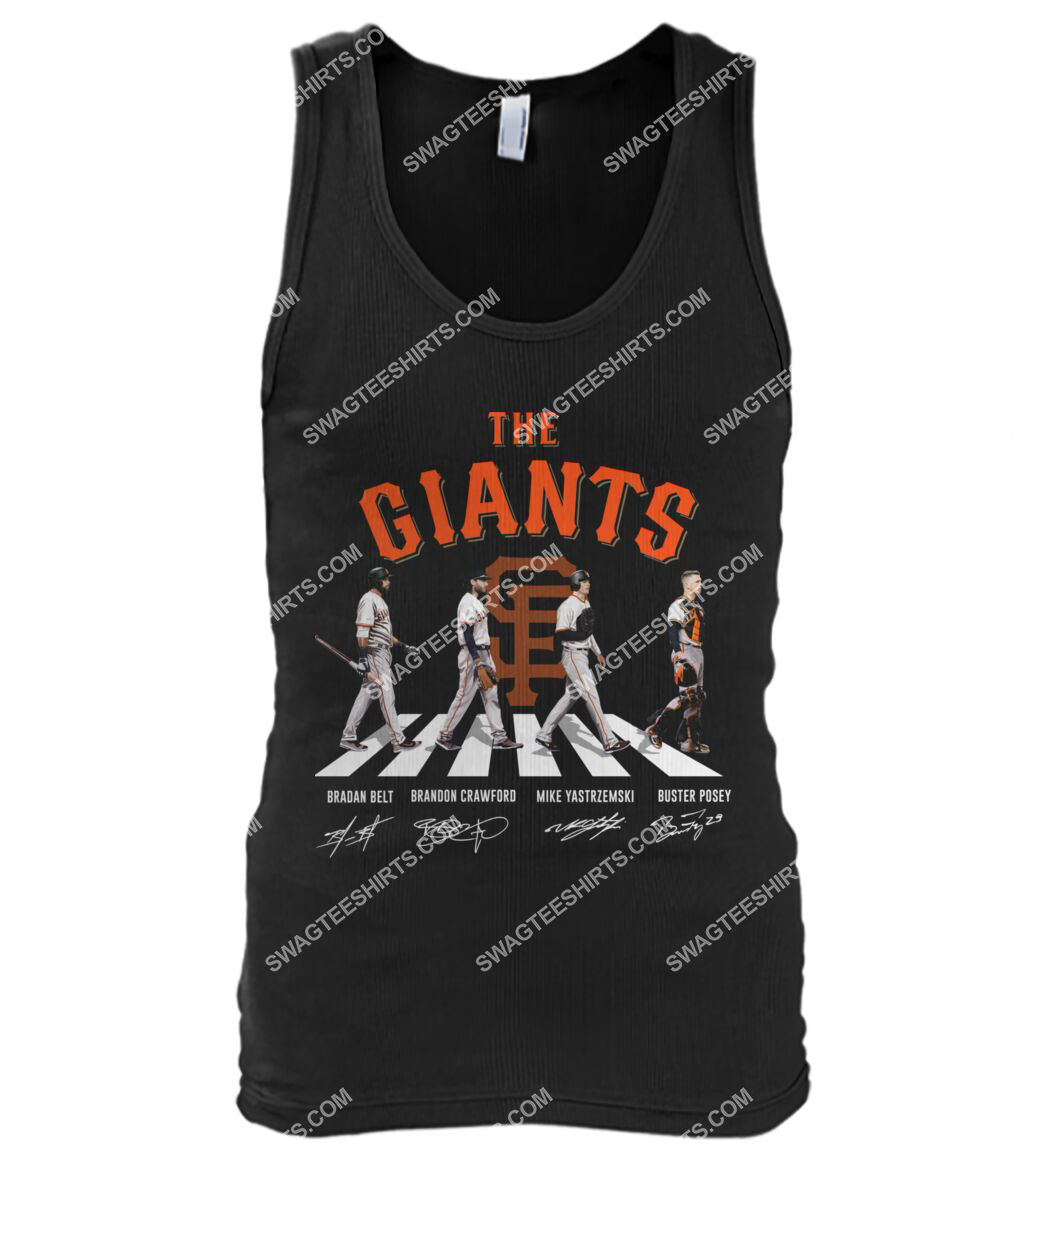 abbey road the san francisco giants signatures tank top 1